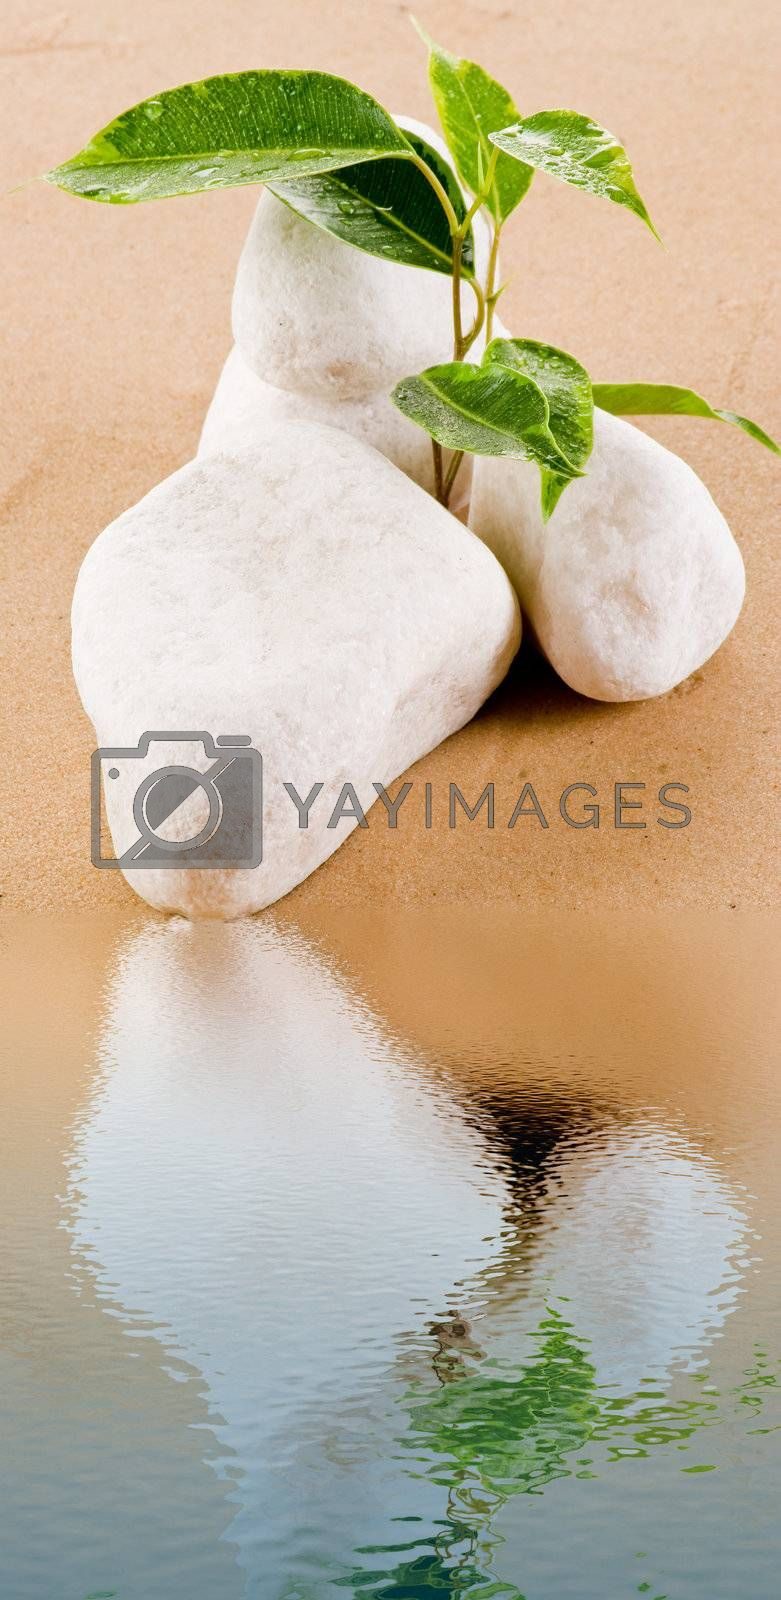 Ficus growing on sand by caldix